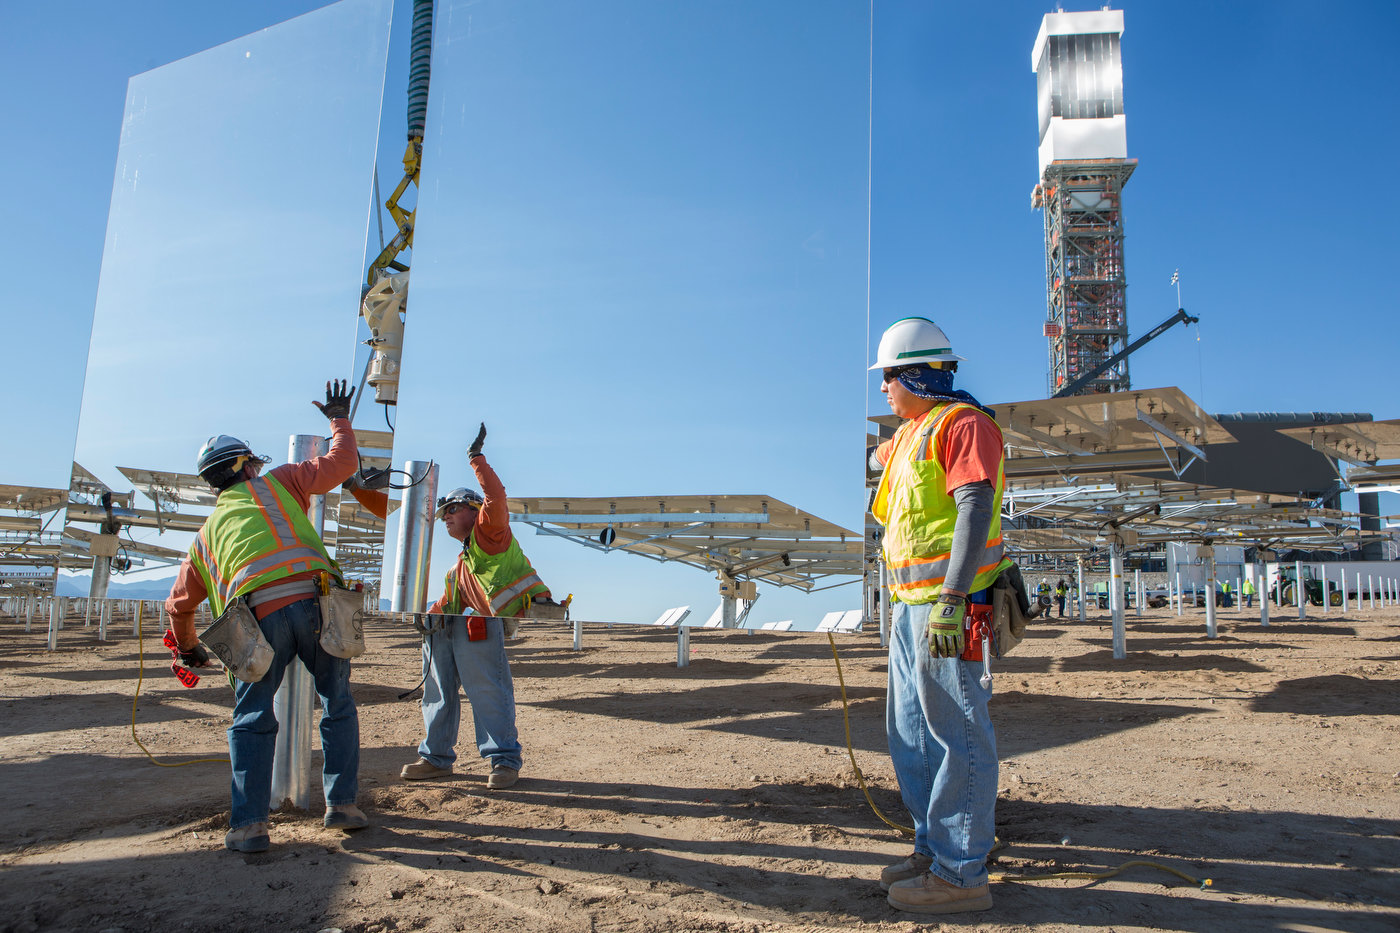 IVANPAH, CALIFORNIA, APRIL 03 2013: A crew secures a heliostat to its pylon near the base of Tower 1, which is {quote}lit{quote} during a steam blow test, at the Ivanpah Solar Power Facility. Located in the Mojave Desert 40 miles southwest of Las Vegas, The Ivanpah Solar Power Facility is a solar thermal power project, currently under construction, with a planned capacity of 392 megawatts, enough to power approximately 140,000 houses. It will deploy 170,000 heliostat mirrors spread over 4,000 hectares, focusing solar energy on boilers located atop three solar power towers, generating steam to drive specially adapted steam turbines The project, developed by Bechtel, will cost $2.2 billion and be the largest solar farm in the world (photo Gilles Mingasson/Getty Images for Bechtel).